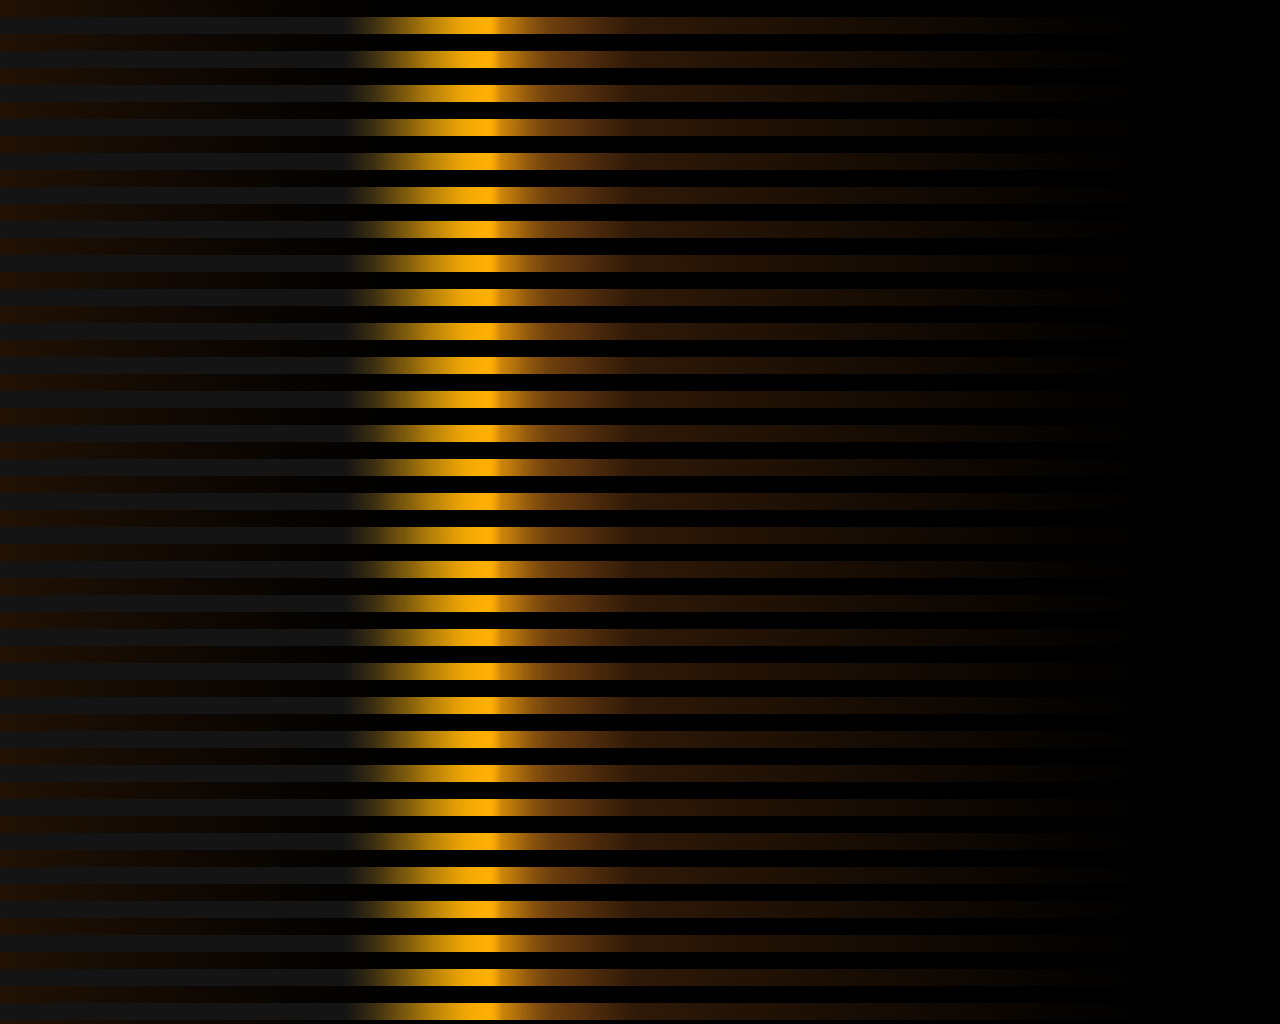 Gold And Black Wallpaper Designs  black sh yn design 6jpg 1280x1024